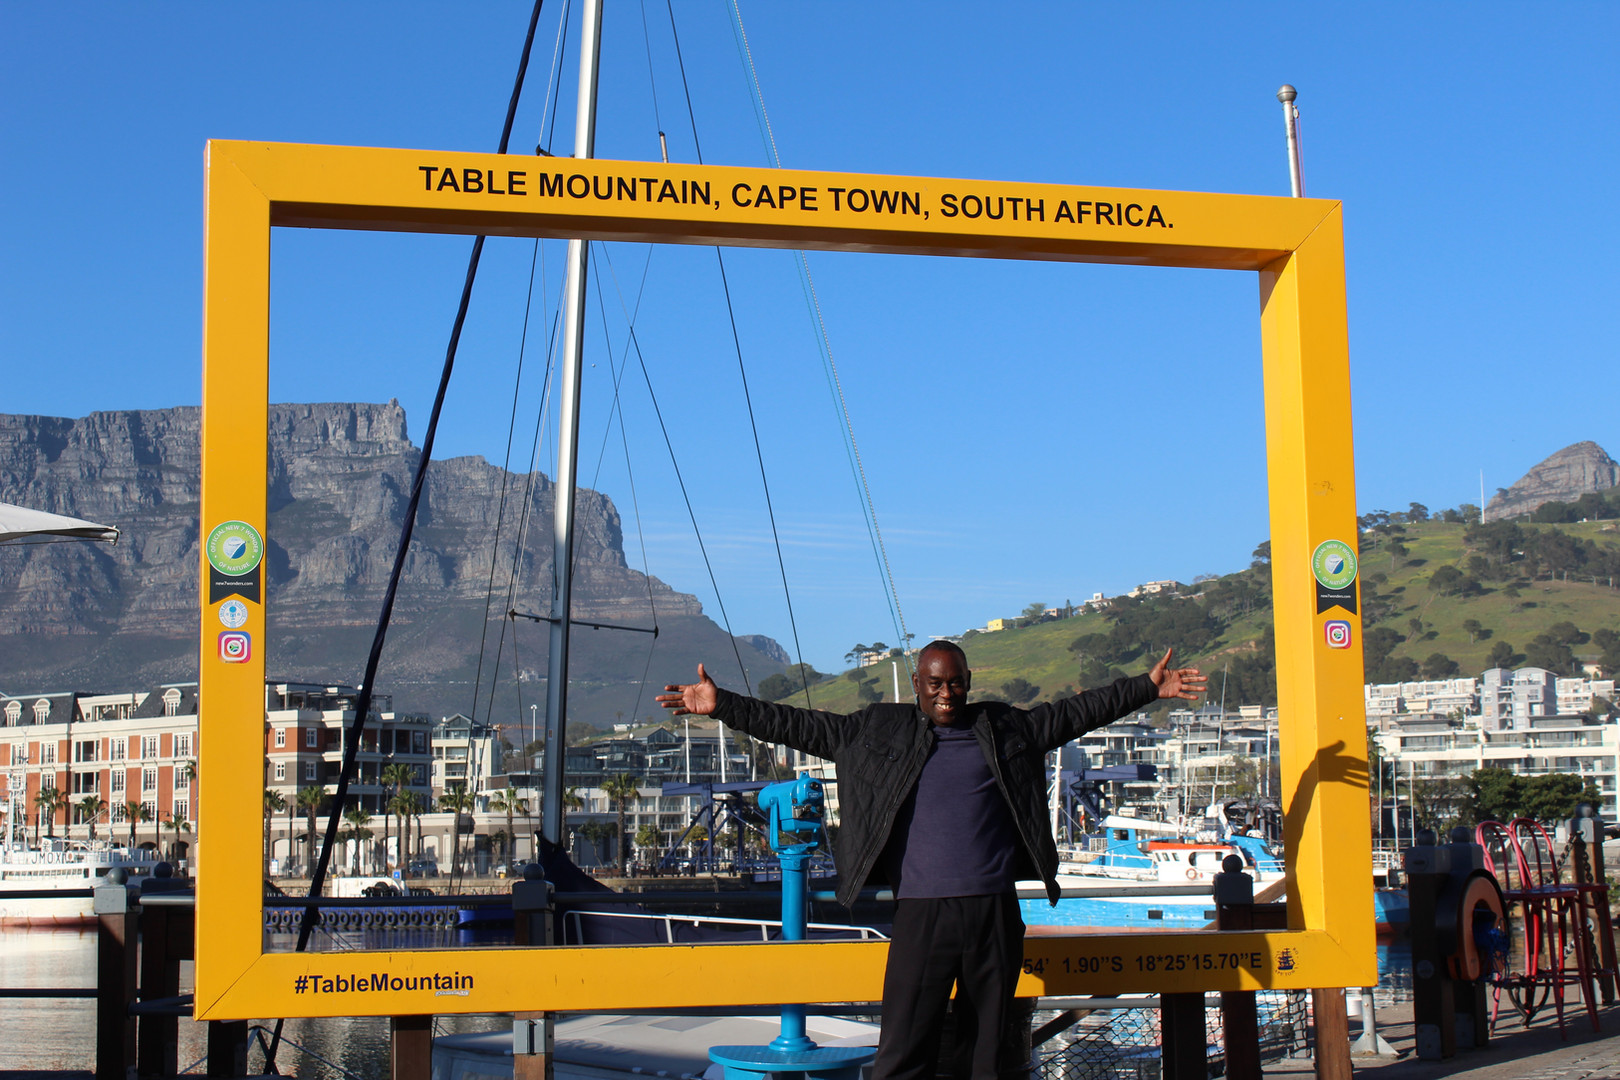 Backdropped by Table Mountain, Cape Town, South Africa.